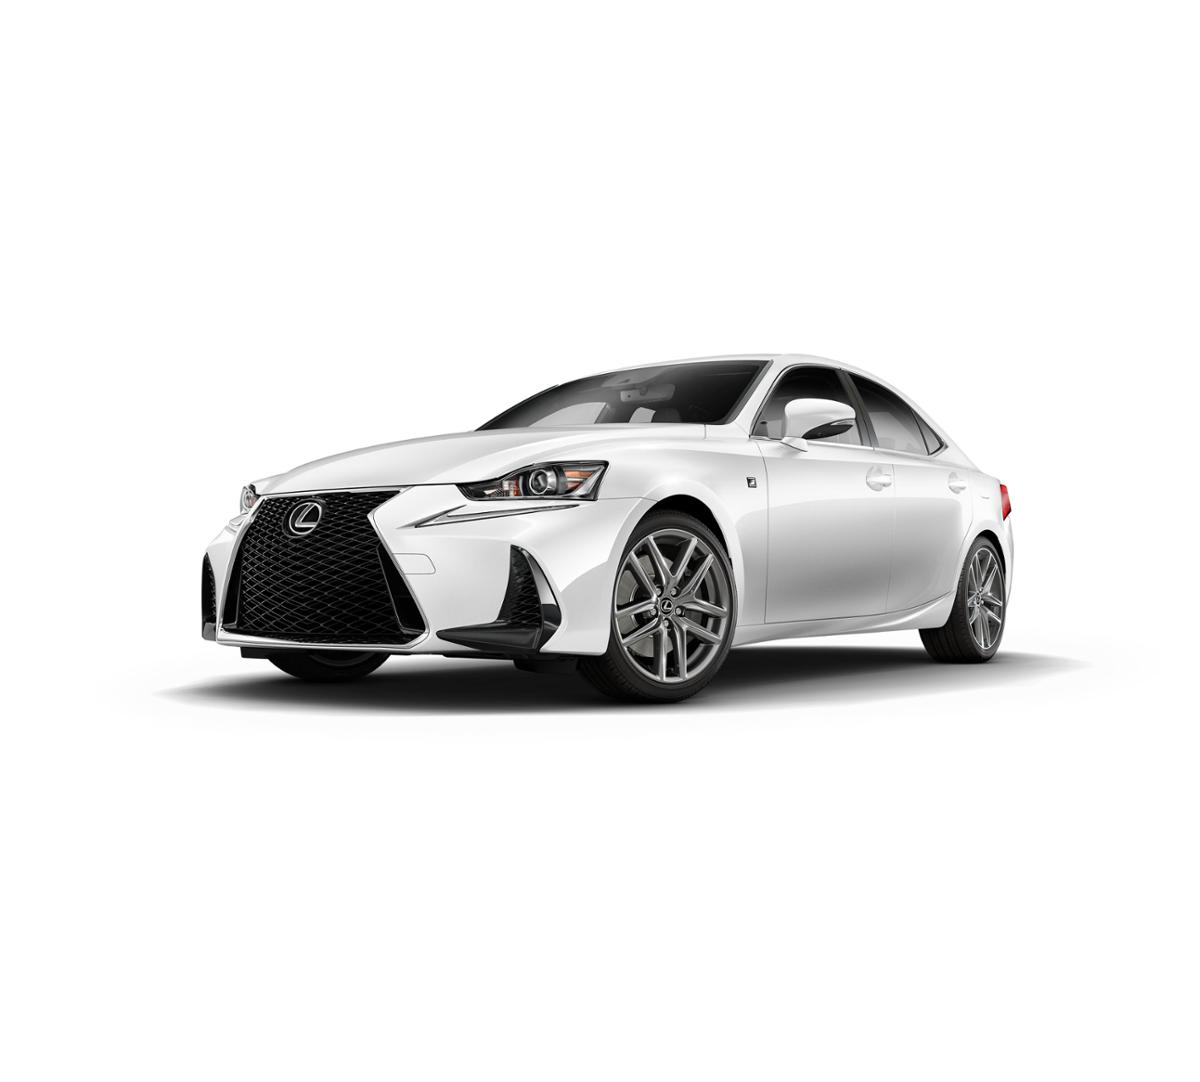 2017 Lexus IS Turbo Vehicle Photo in Santa Barbara, CA 93105